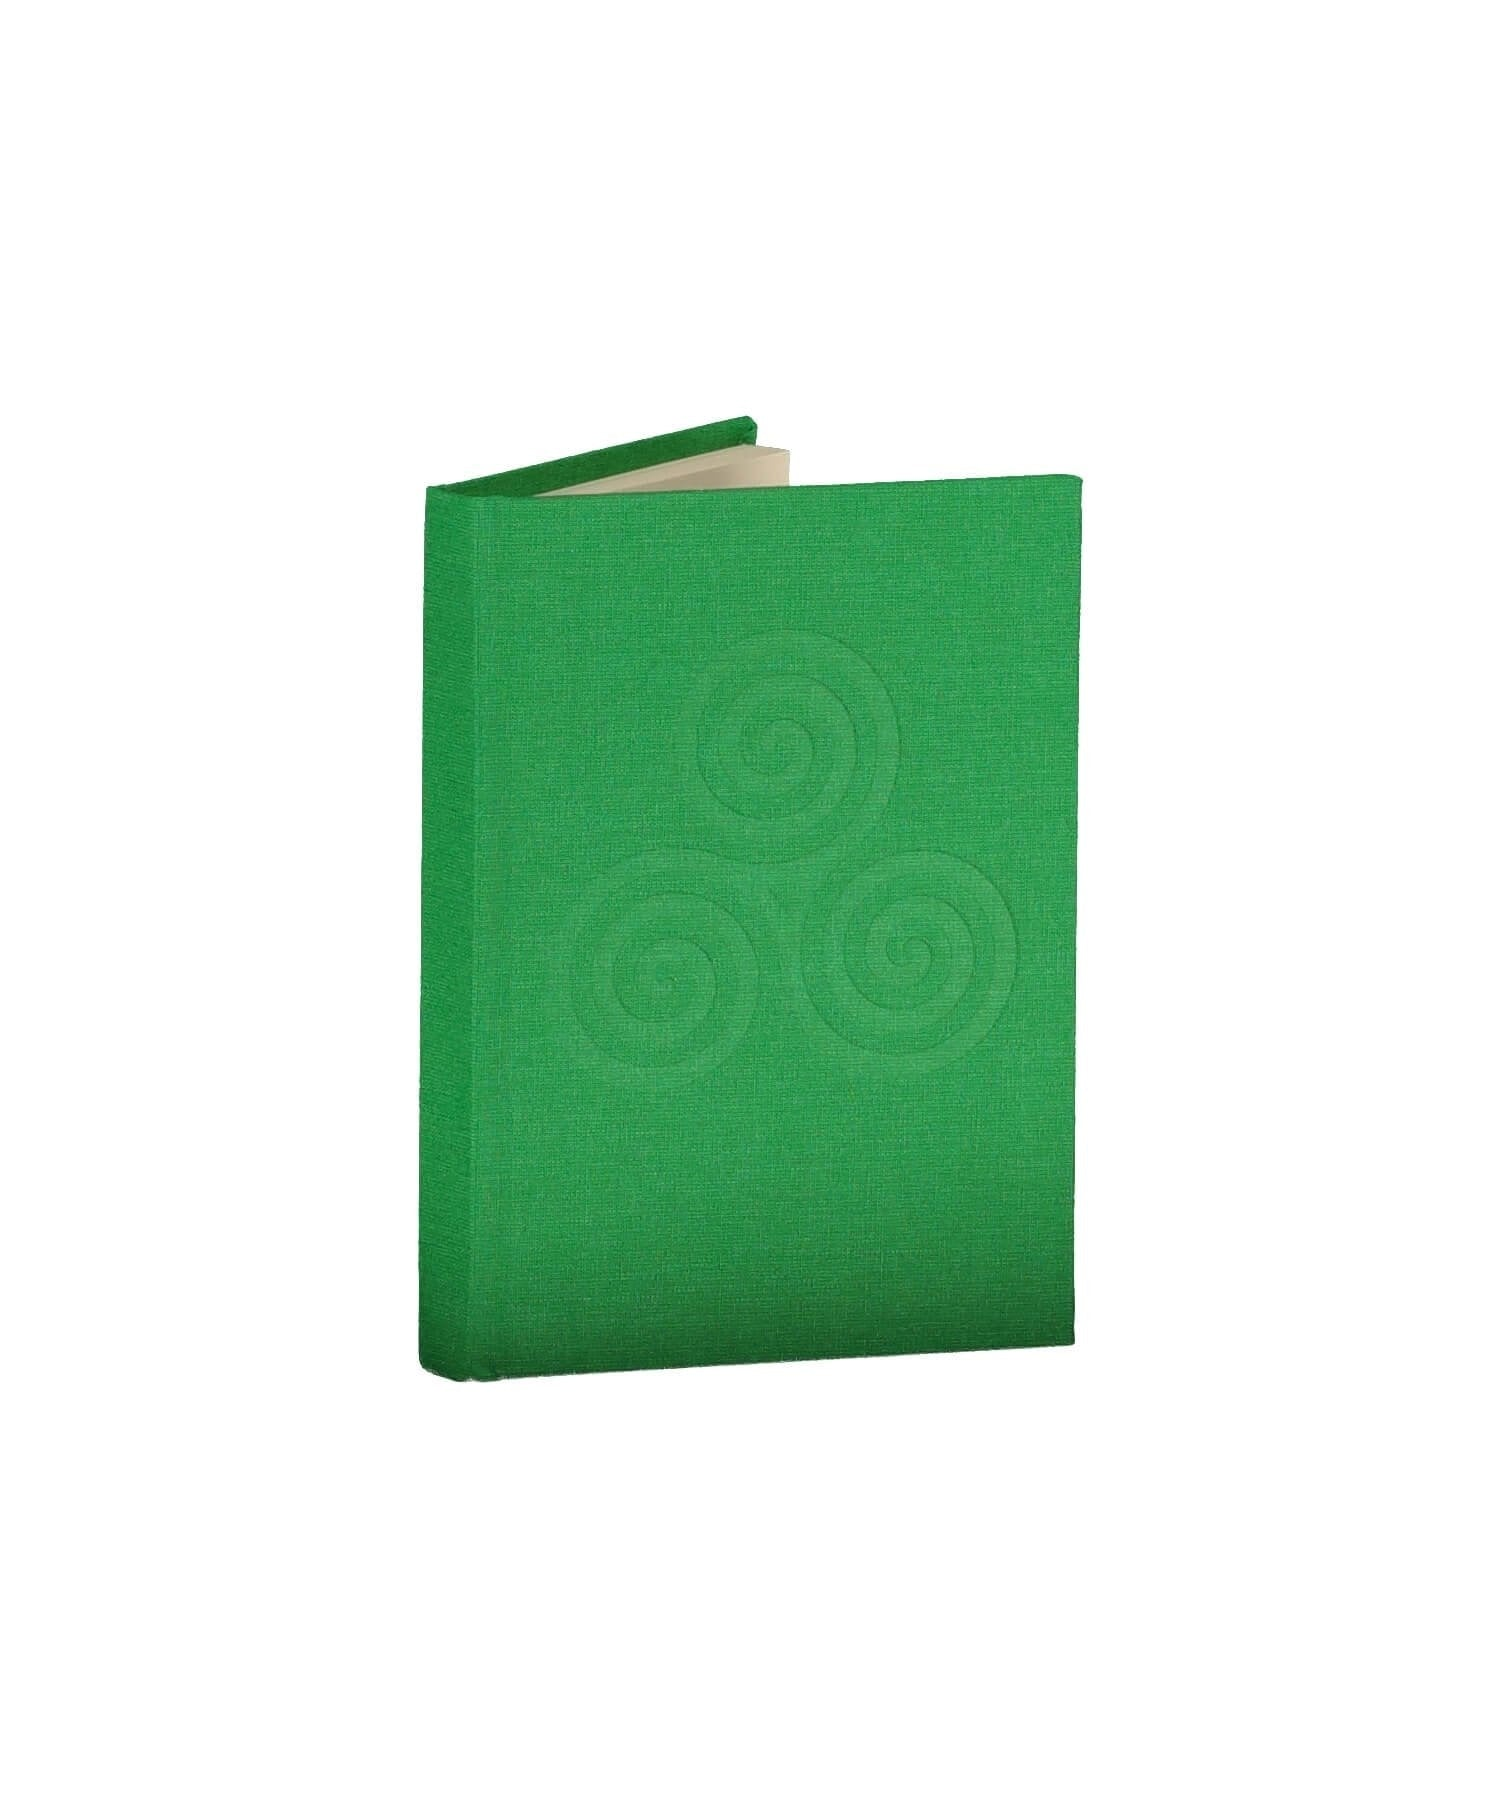 Triskele Knot Pocket Notebook - Meadow Duffy Bookbinders Books